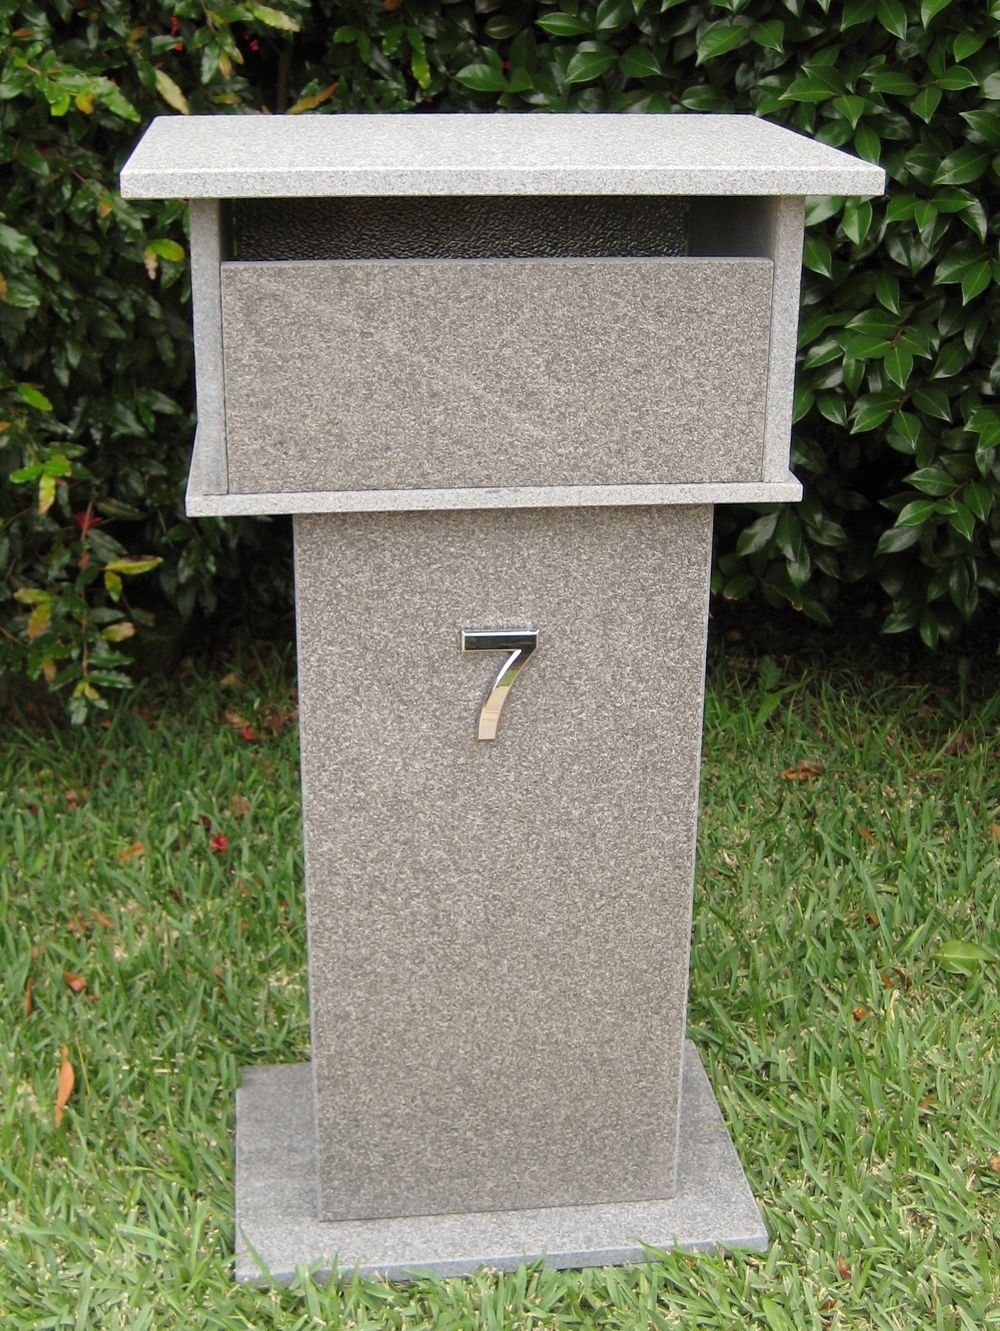 86. Blue stone letterbox with bushhammered finish. Back 2 key aluminium door. Tough material. Sizes 720x400x300 $351